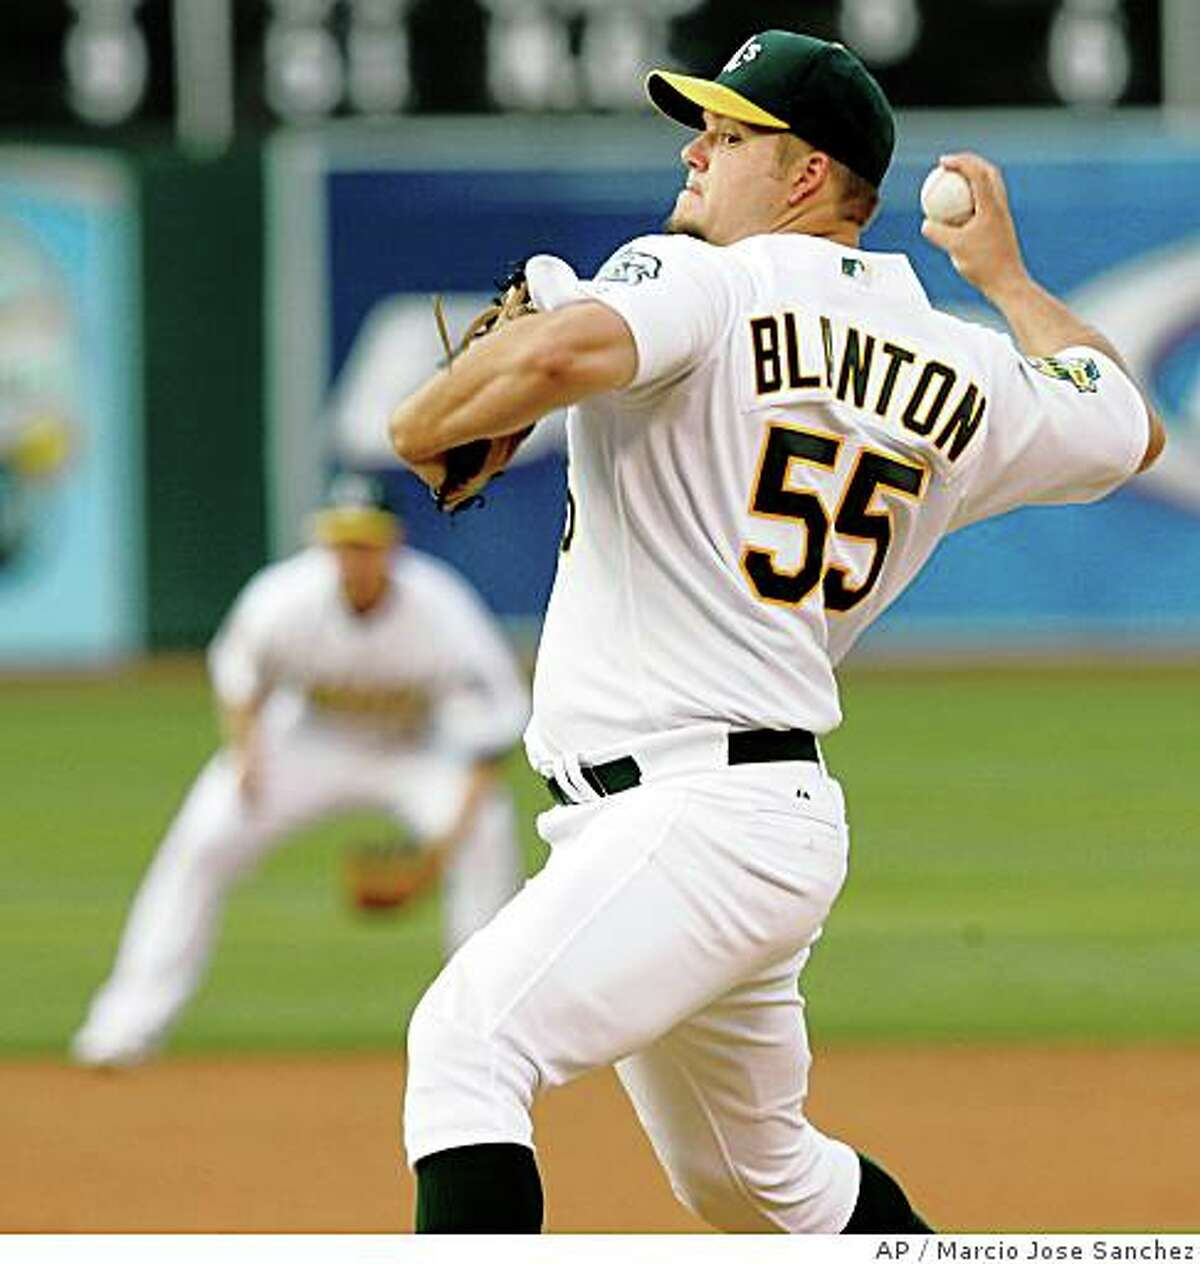 Oakland Athletics starting pitcher Joe Blanton throws to the Seattle Mariners in the first inning of a baseball game in Oakland, Calif., Wednesday, July 9, 2008. (AP Photo/Marcio Jose Sanchez)